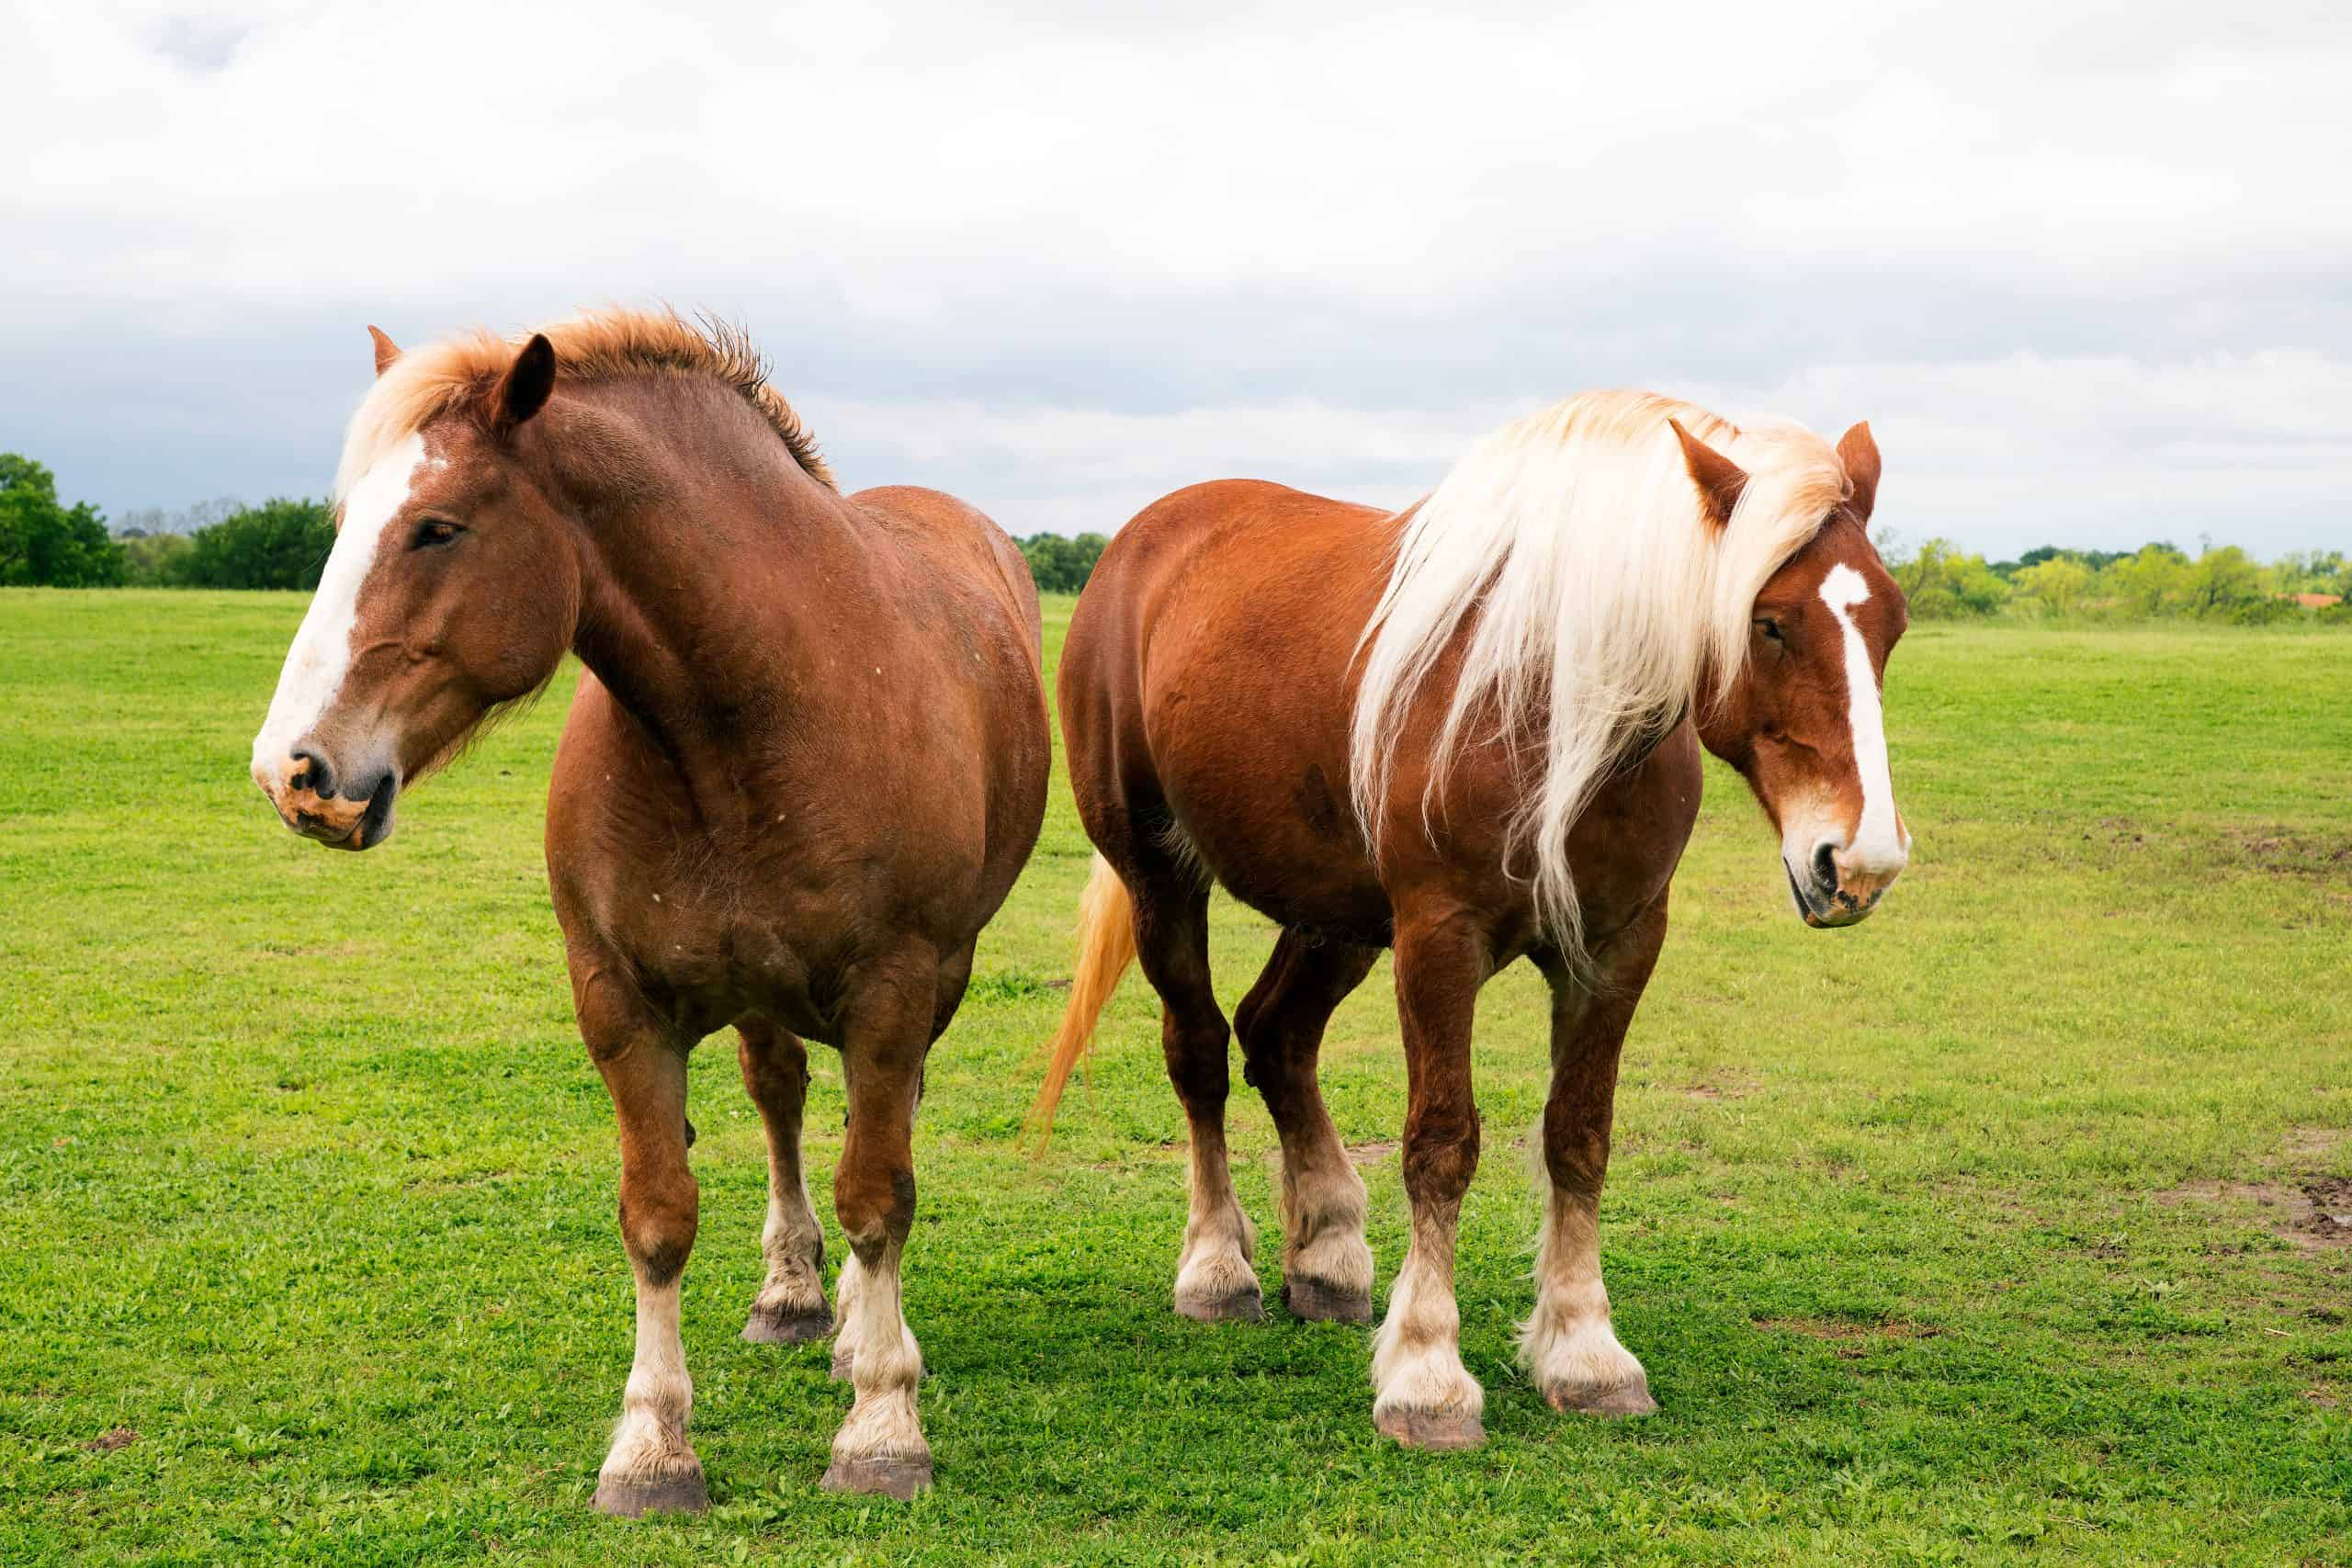 Belgian draft horses near Ennis, Texas